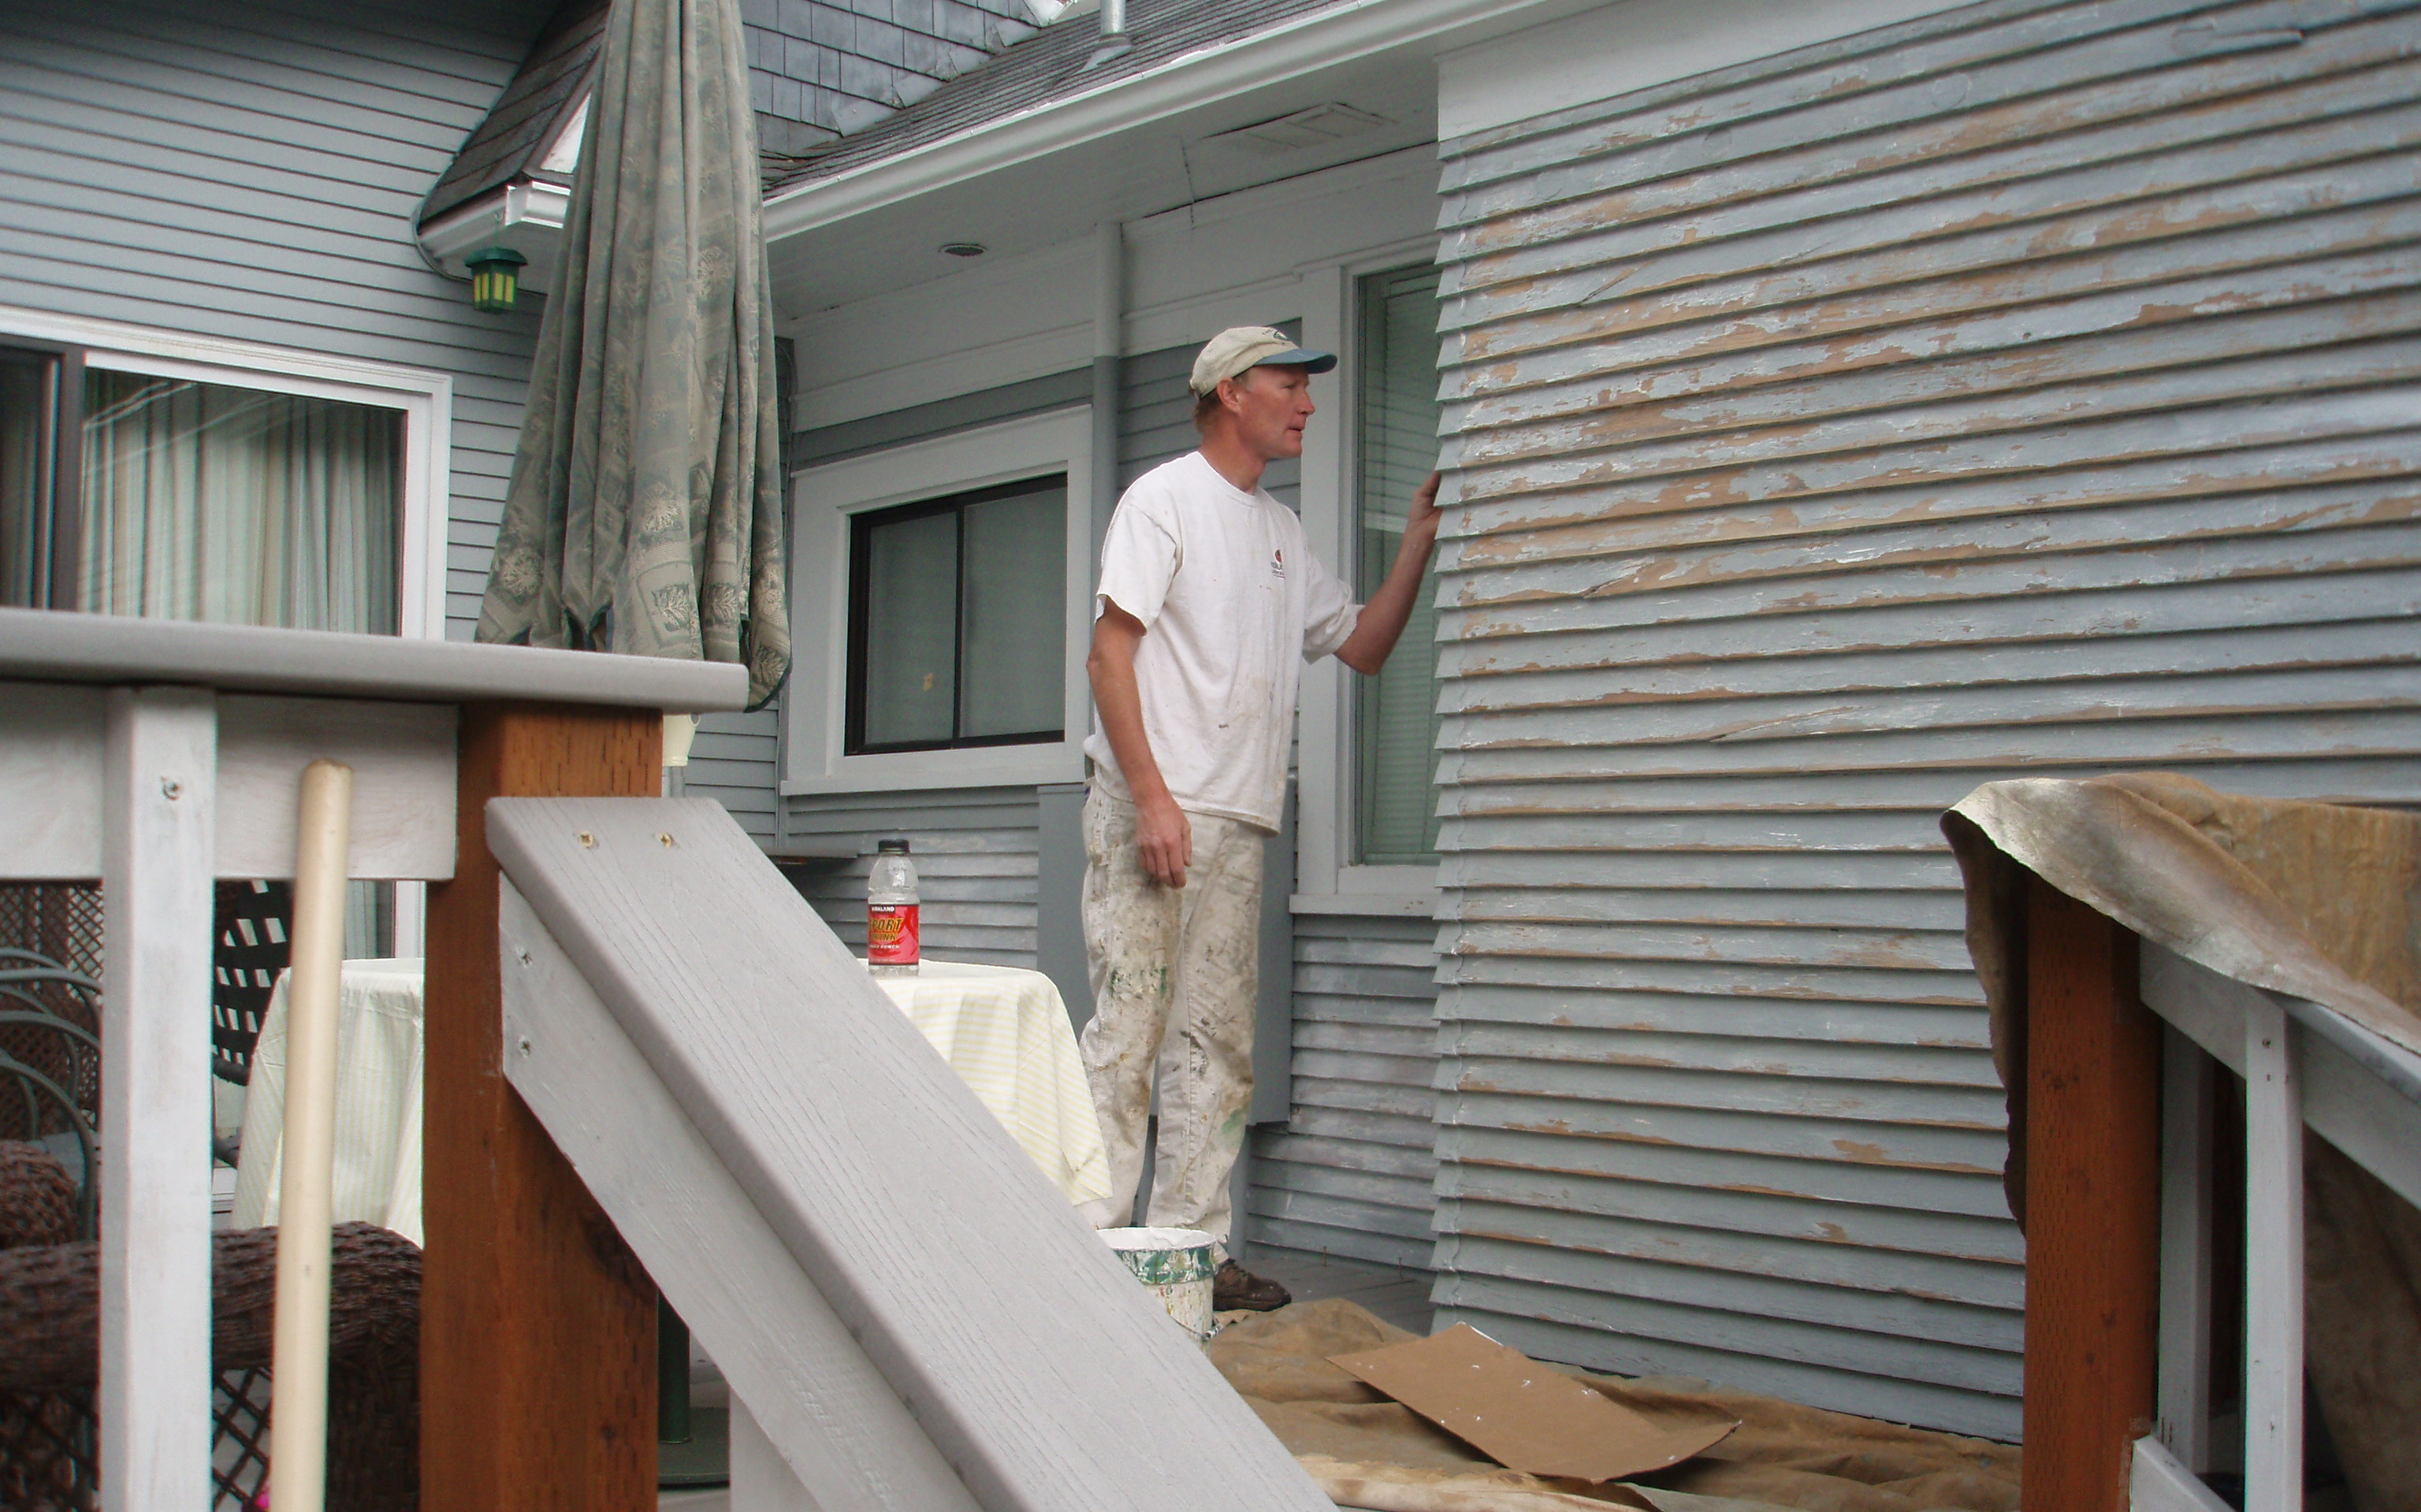 One of our contractors working on painting jobs in Whitefish, MT